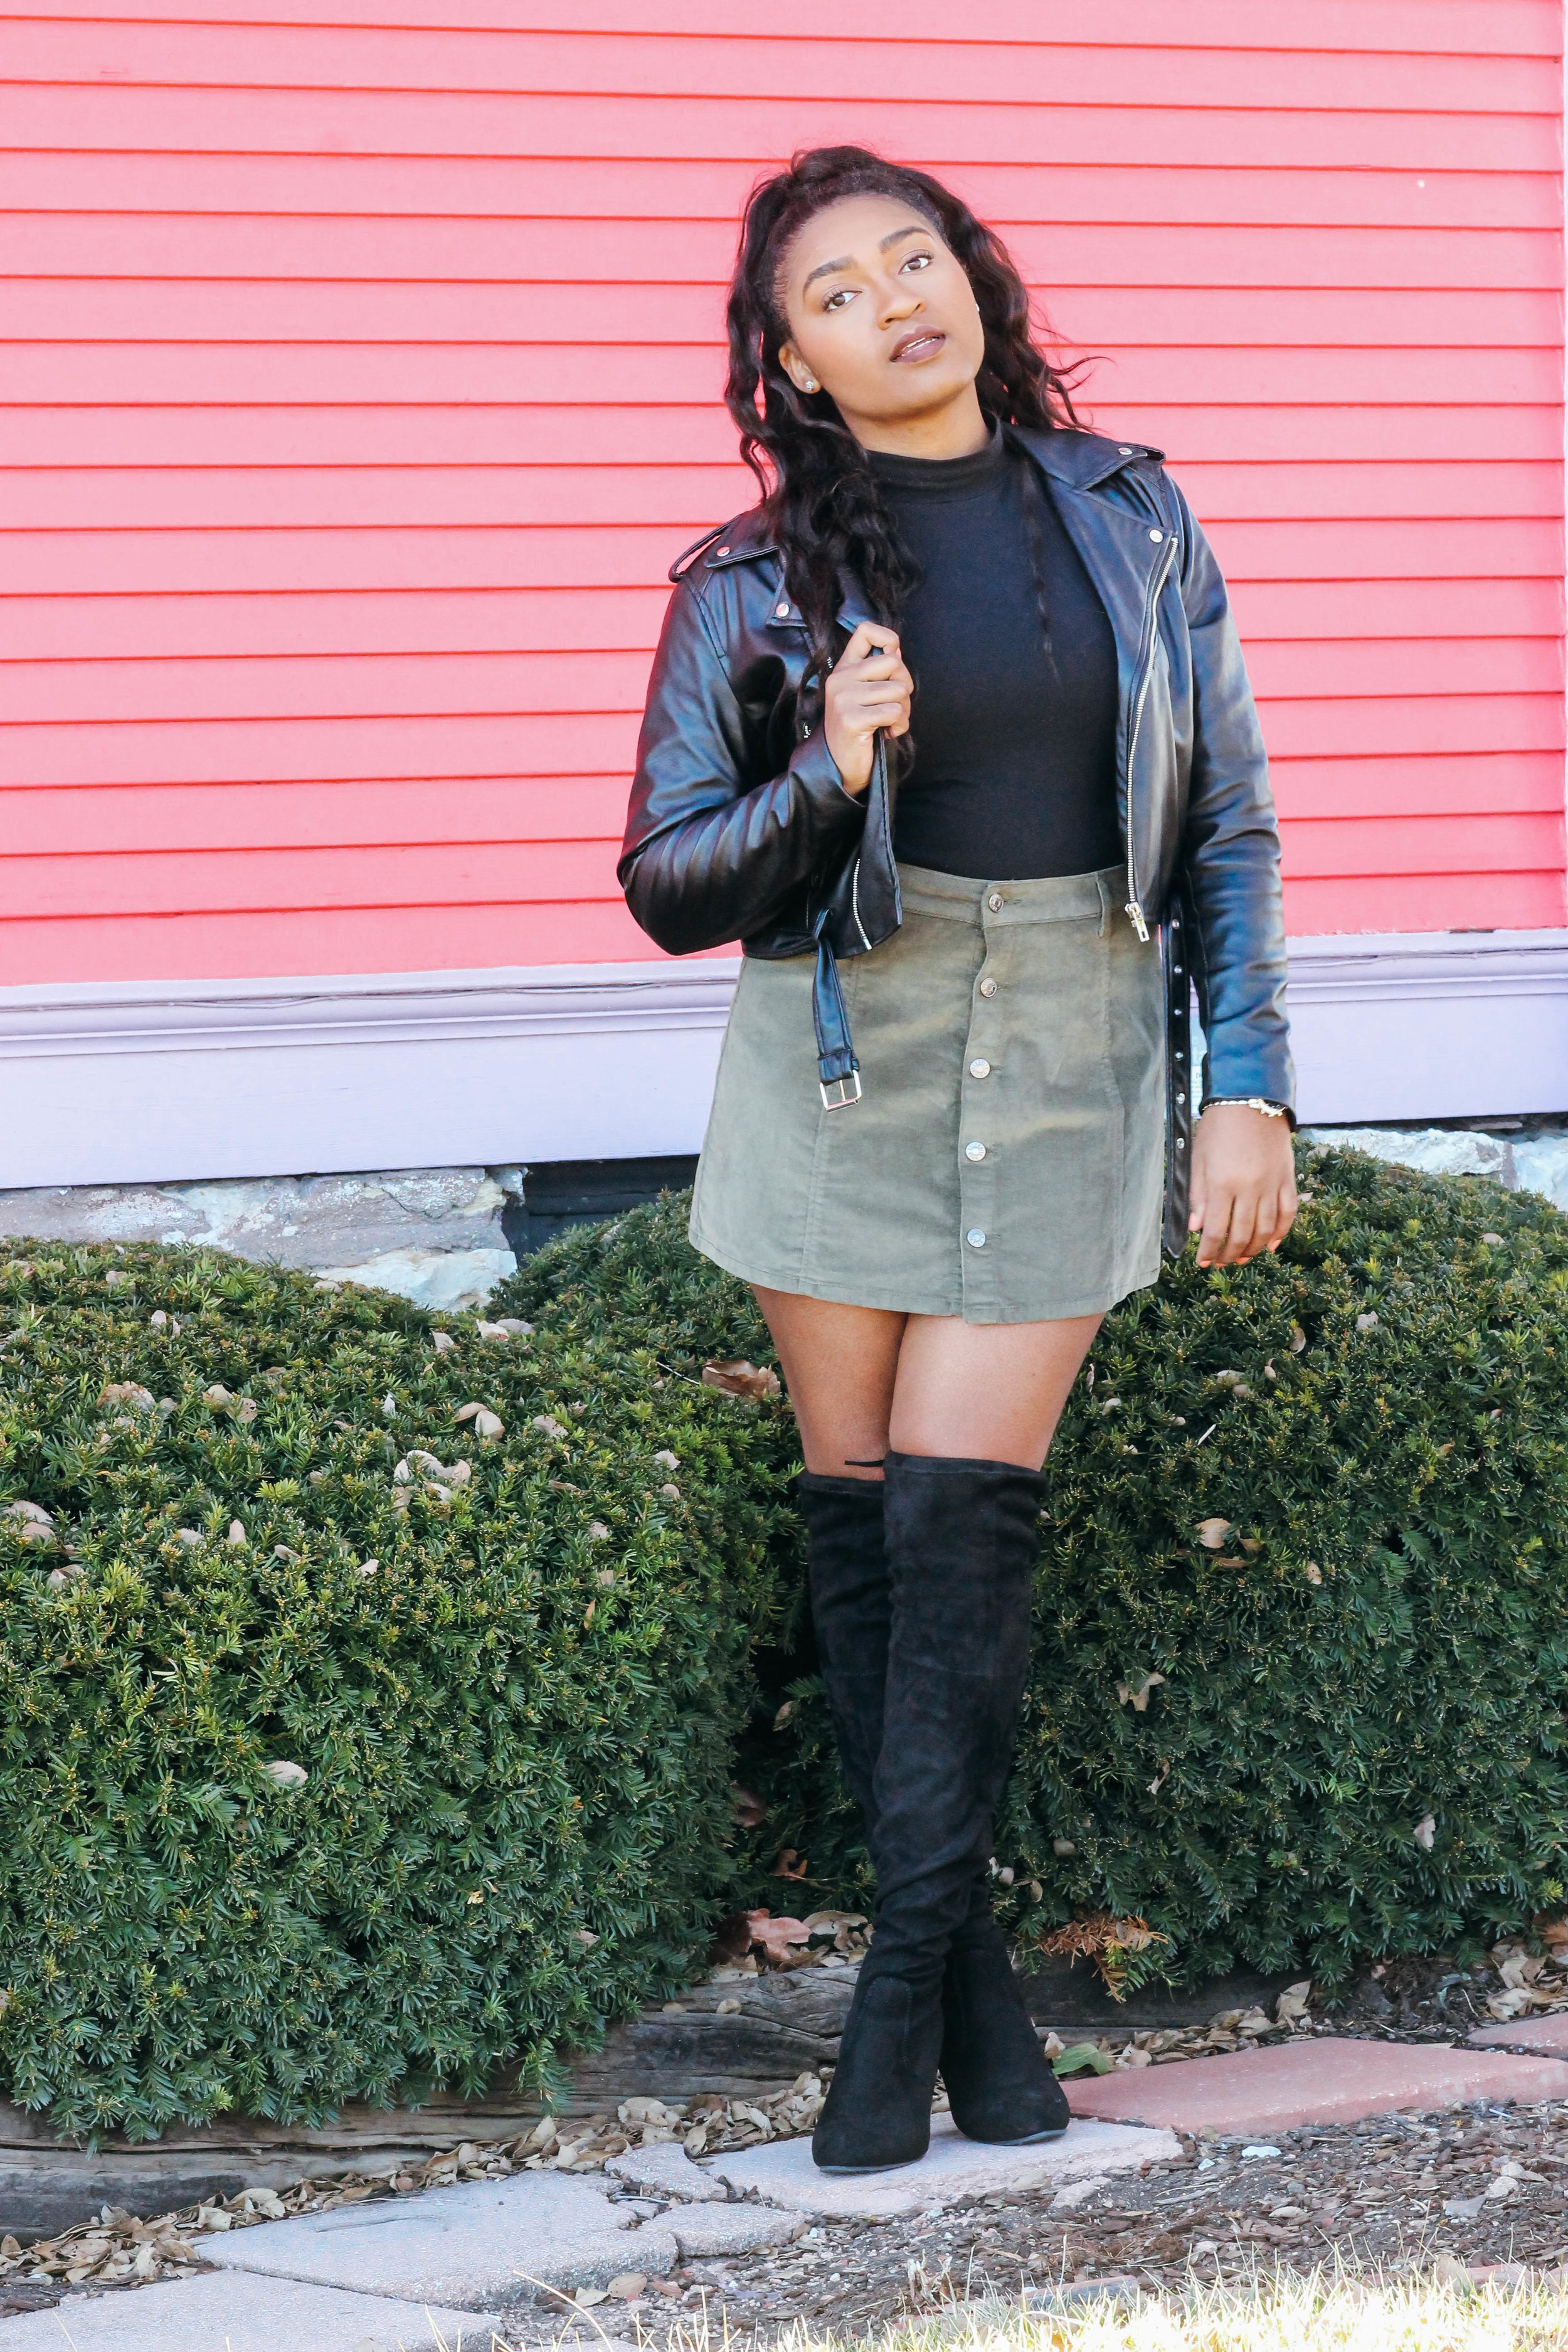 jasmine diane wearing a mini skirt with knee high boots #ootd in kansas city with black and green